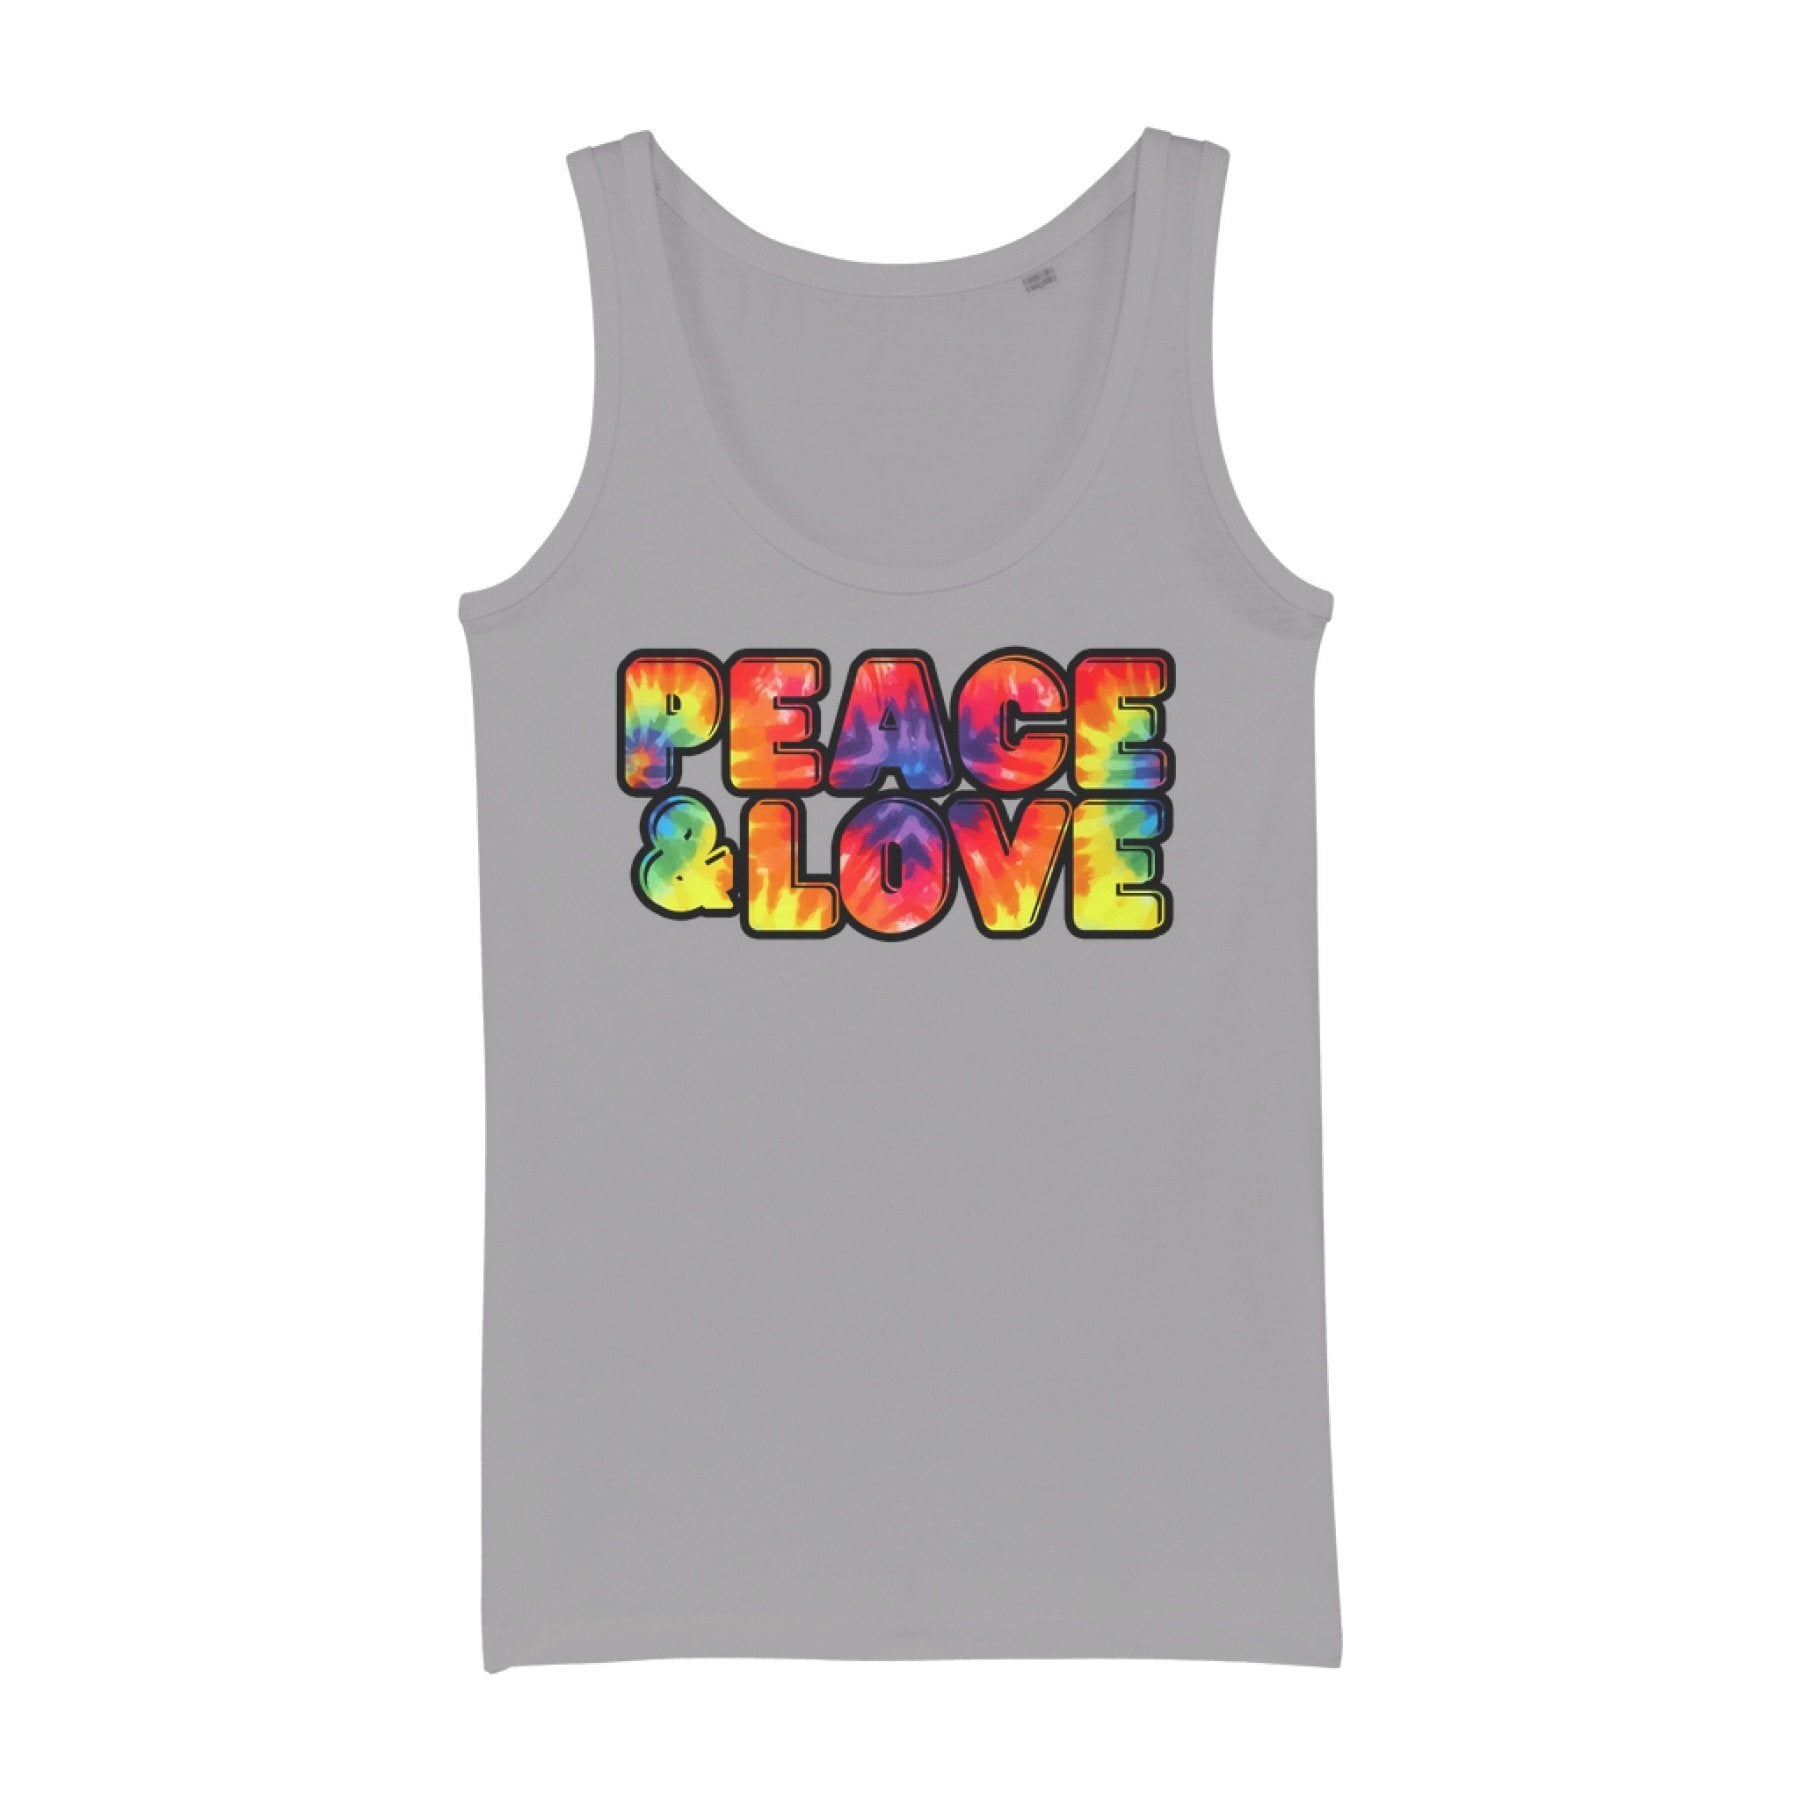 Peace & Love Graphic Style Organic Jersey Womens Tank Top